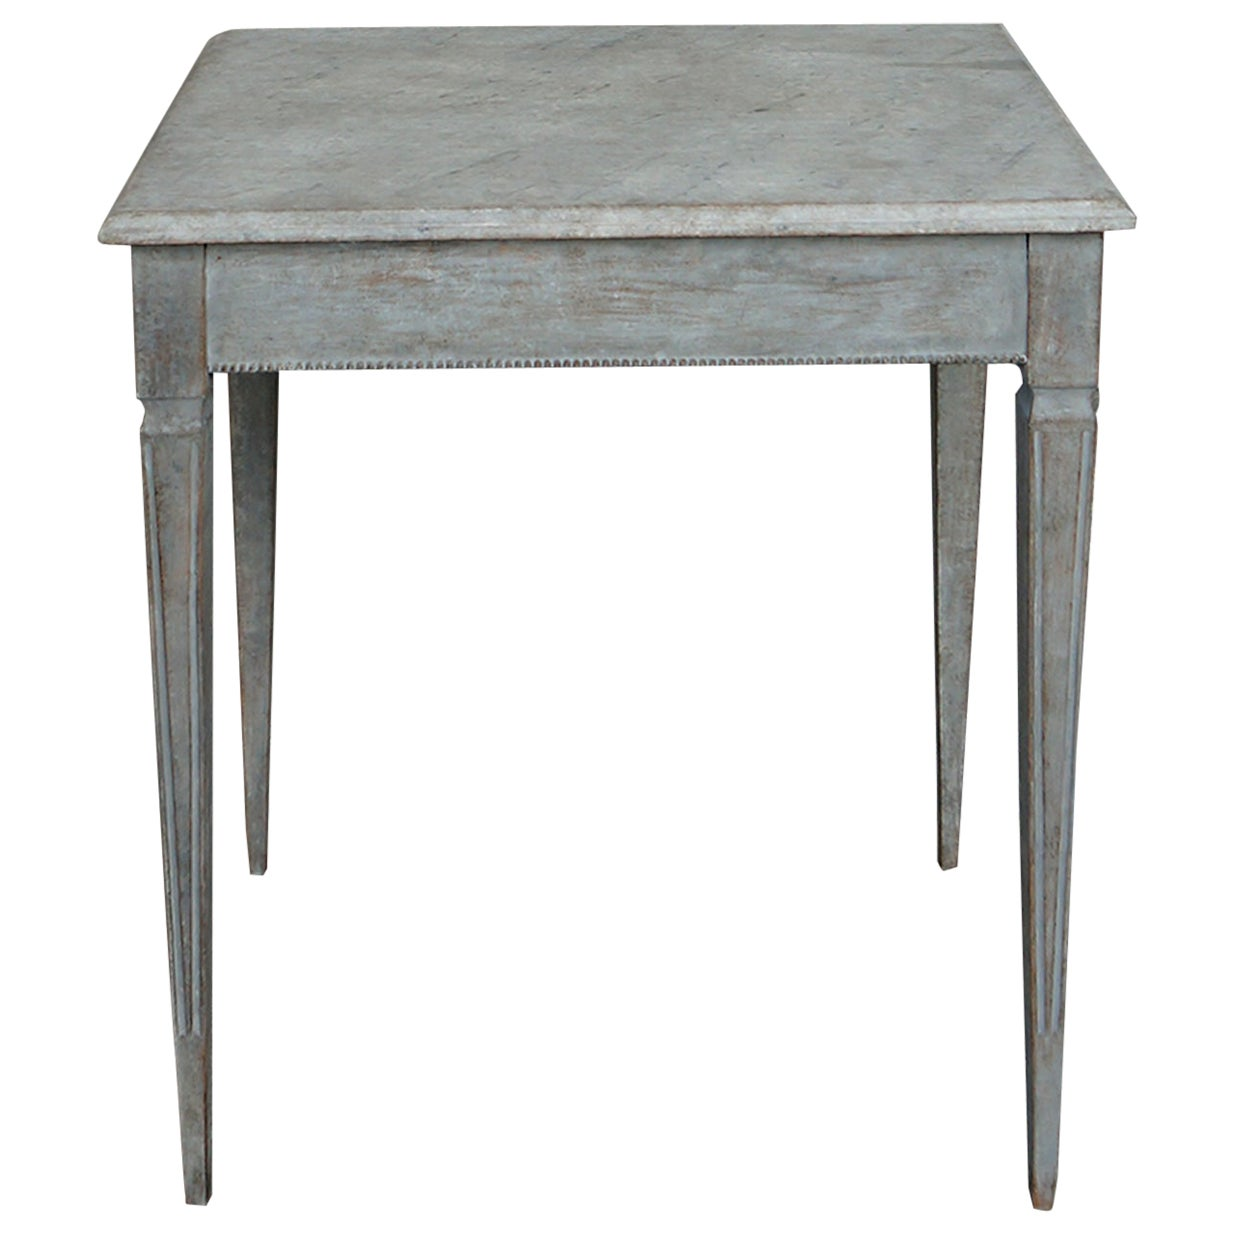 Side Table with Faux Marble Top